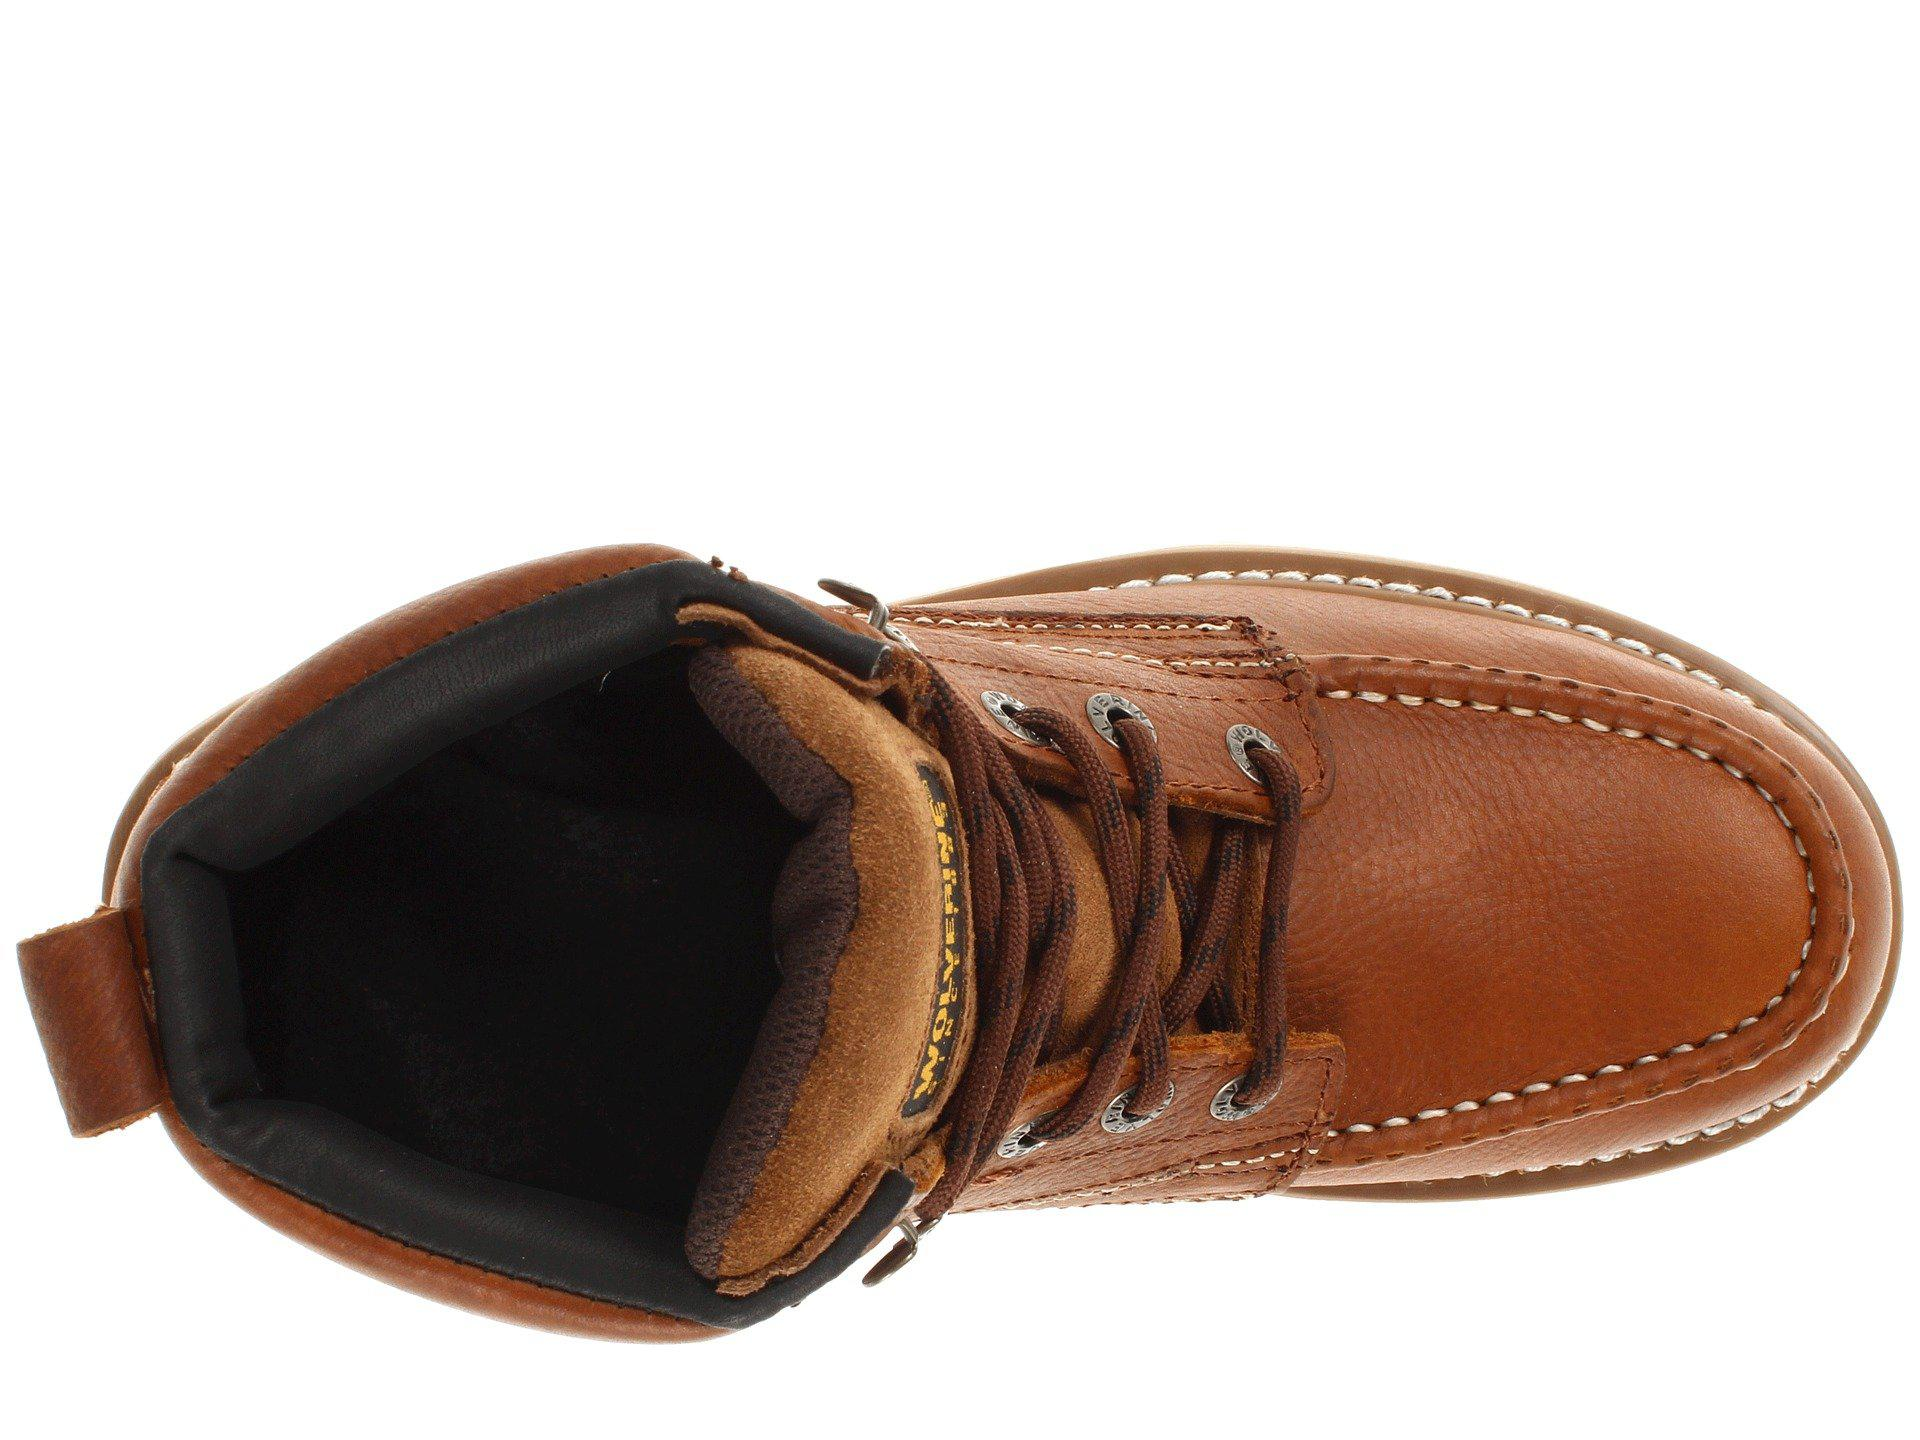 102f1d9f419b Wolverine - Moc Toe Wedge (brown) Men s Work Boots for Men - Lyst. View  fullscreen